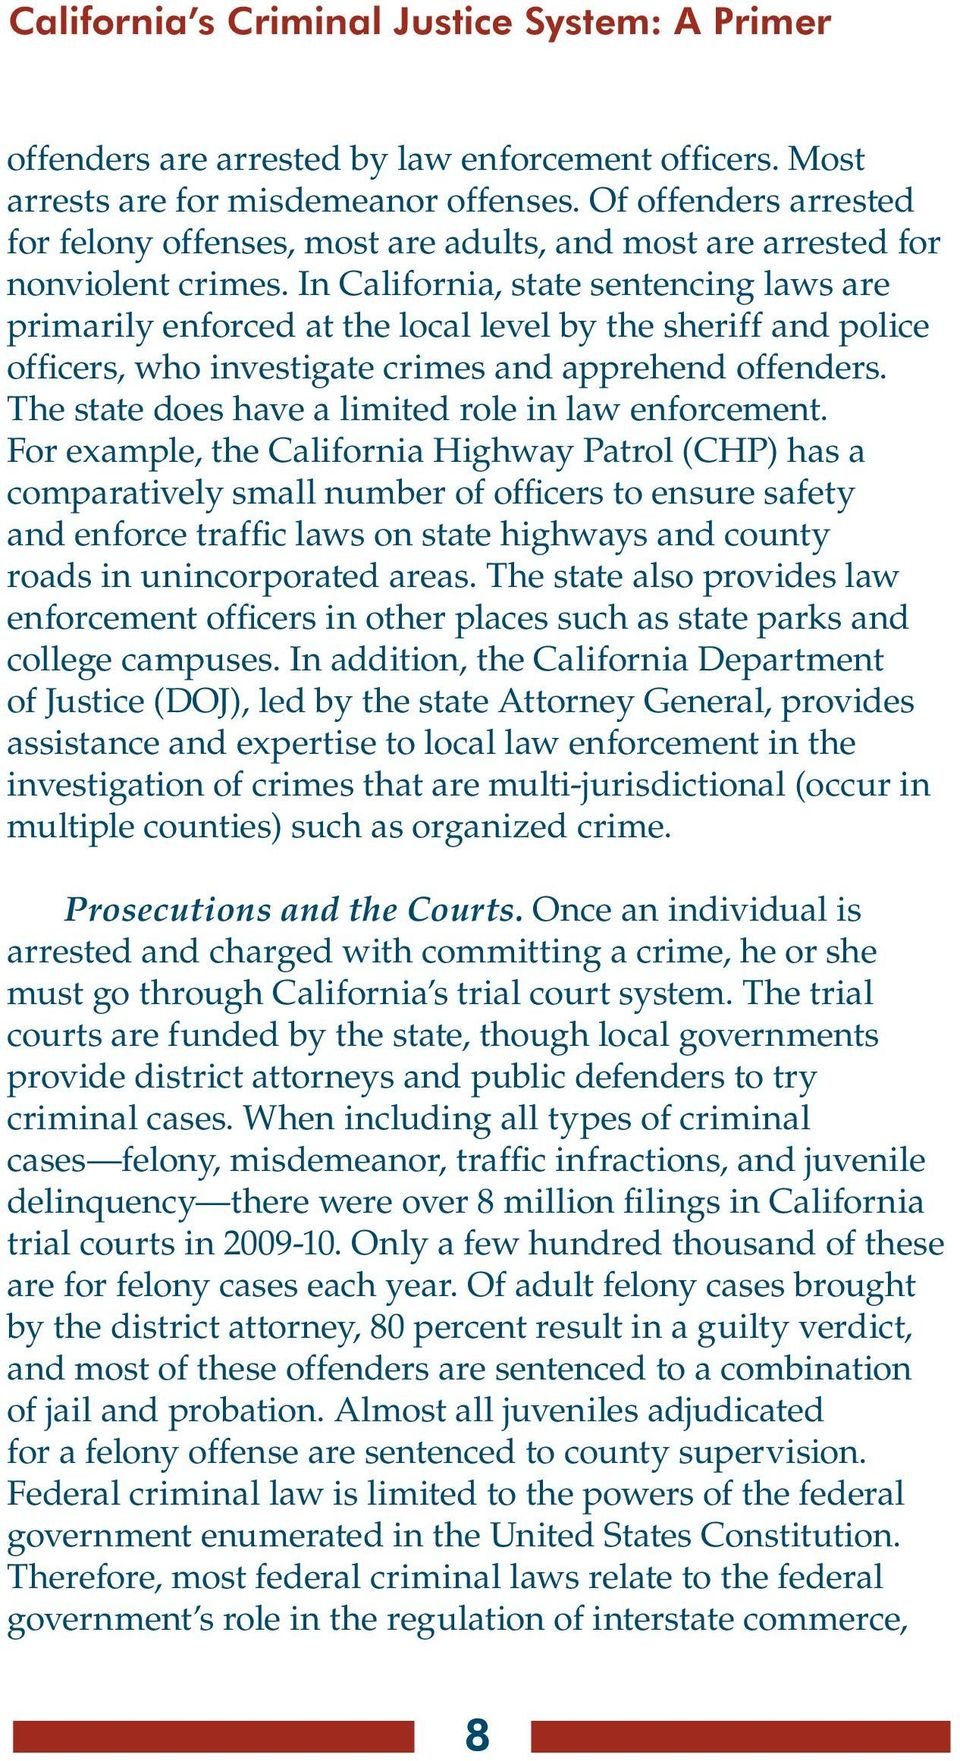 In California, state sentencing laws are primarily enforced at the local level by the sheriff and police officers, who investigate crimes and apprehend offenders.